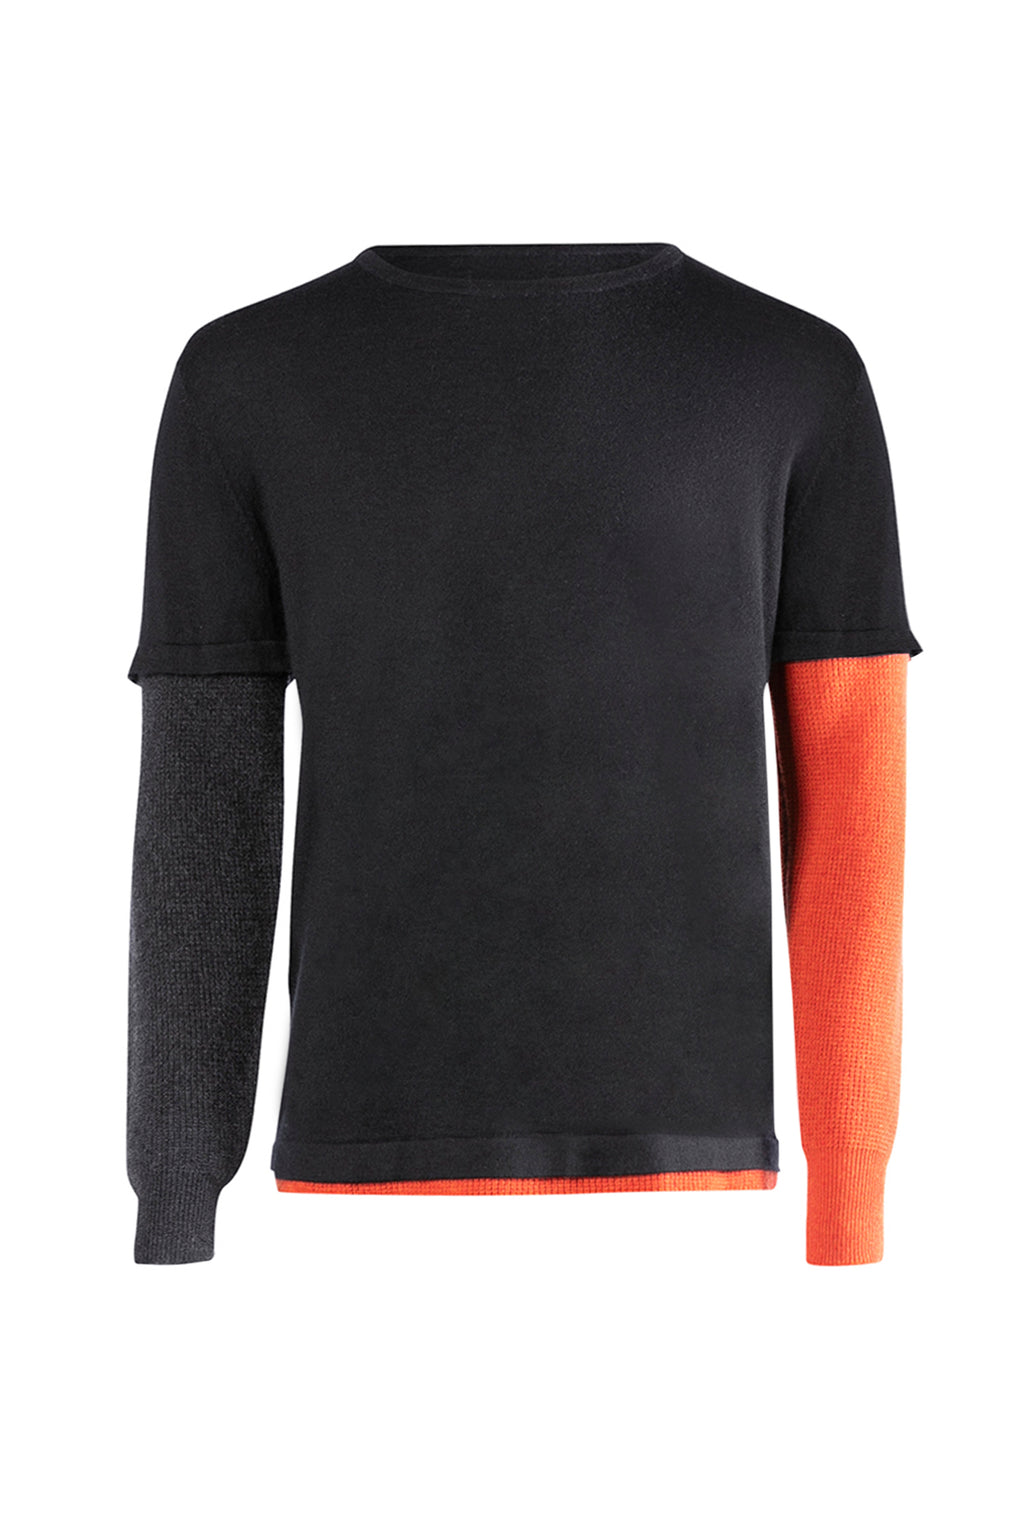 ISM Cashmere Waffle Long Sleeve Black/Red